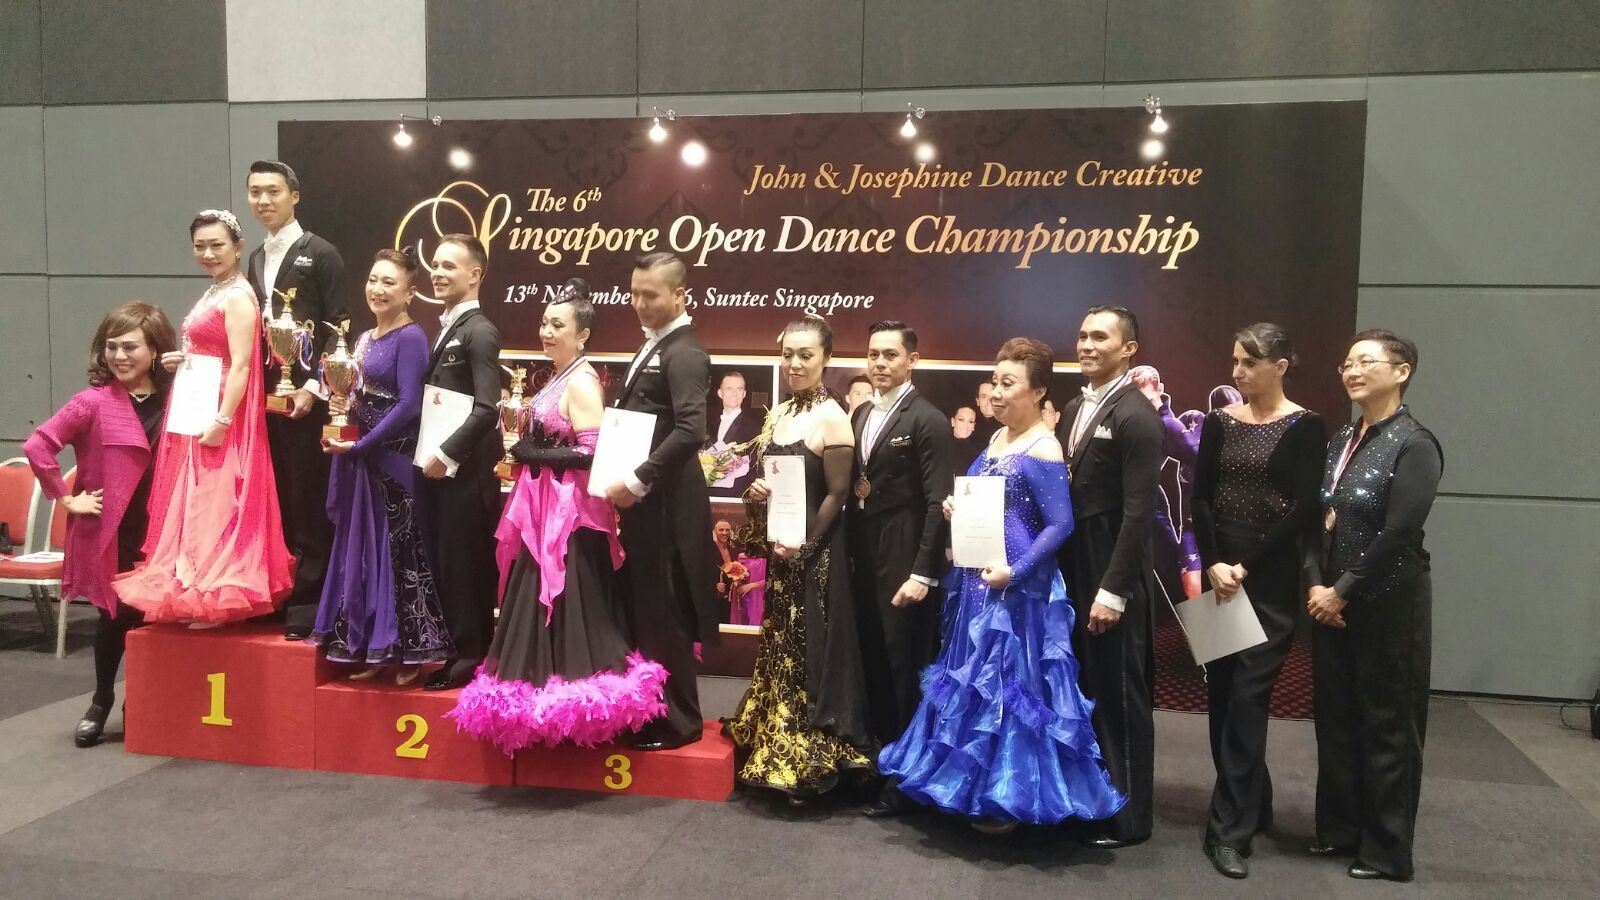 Champions at the 6th Singapore Open Dance Championship